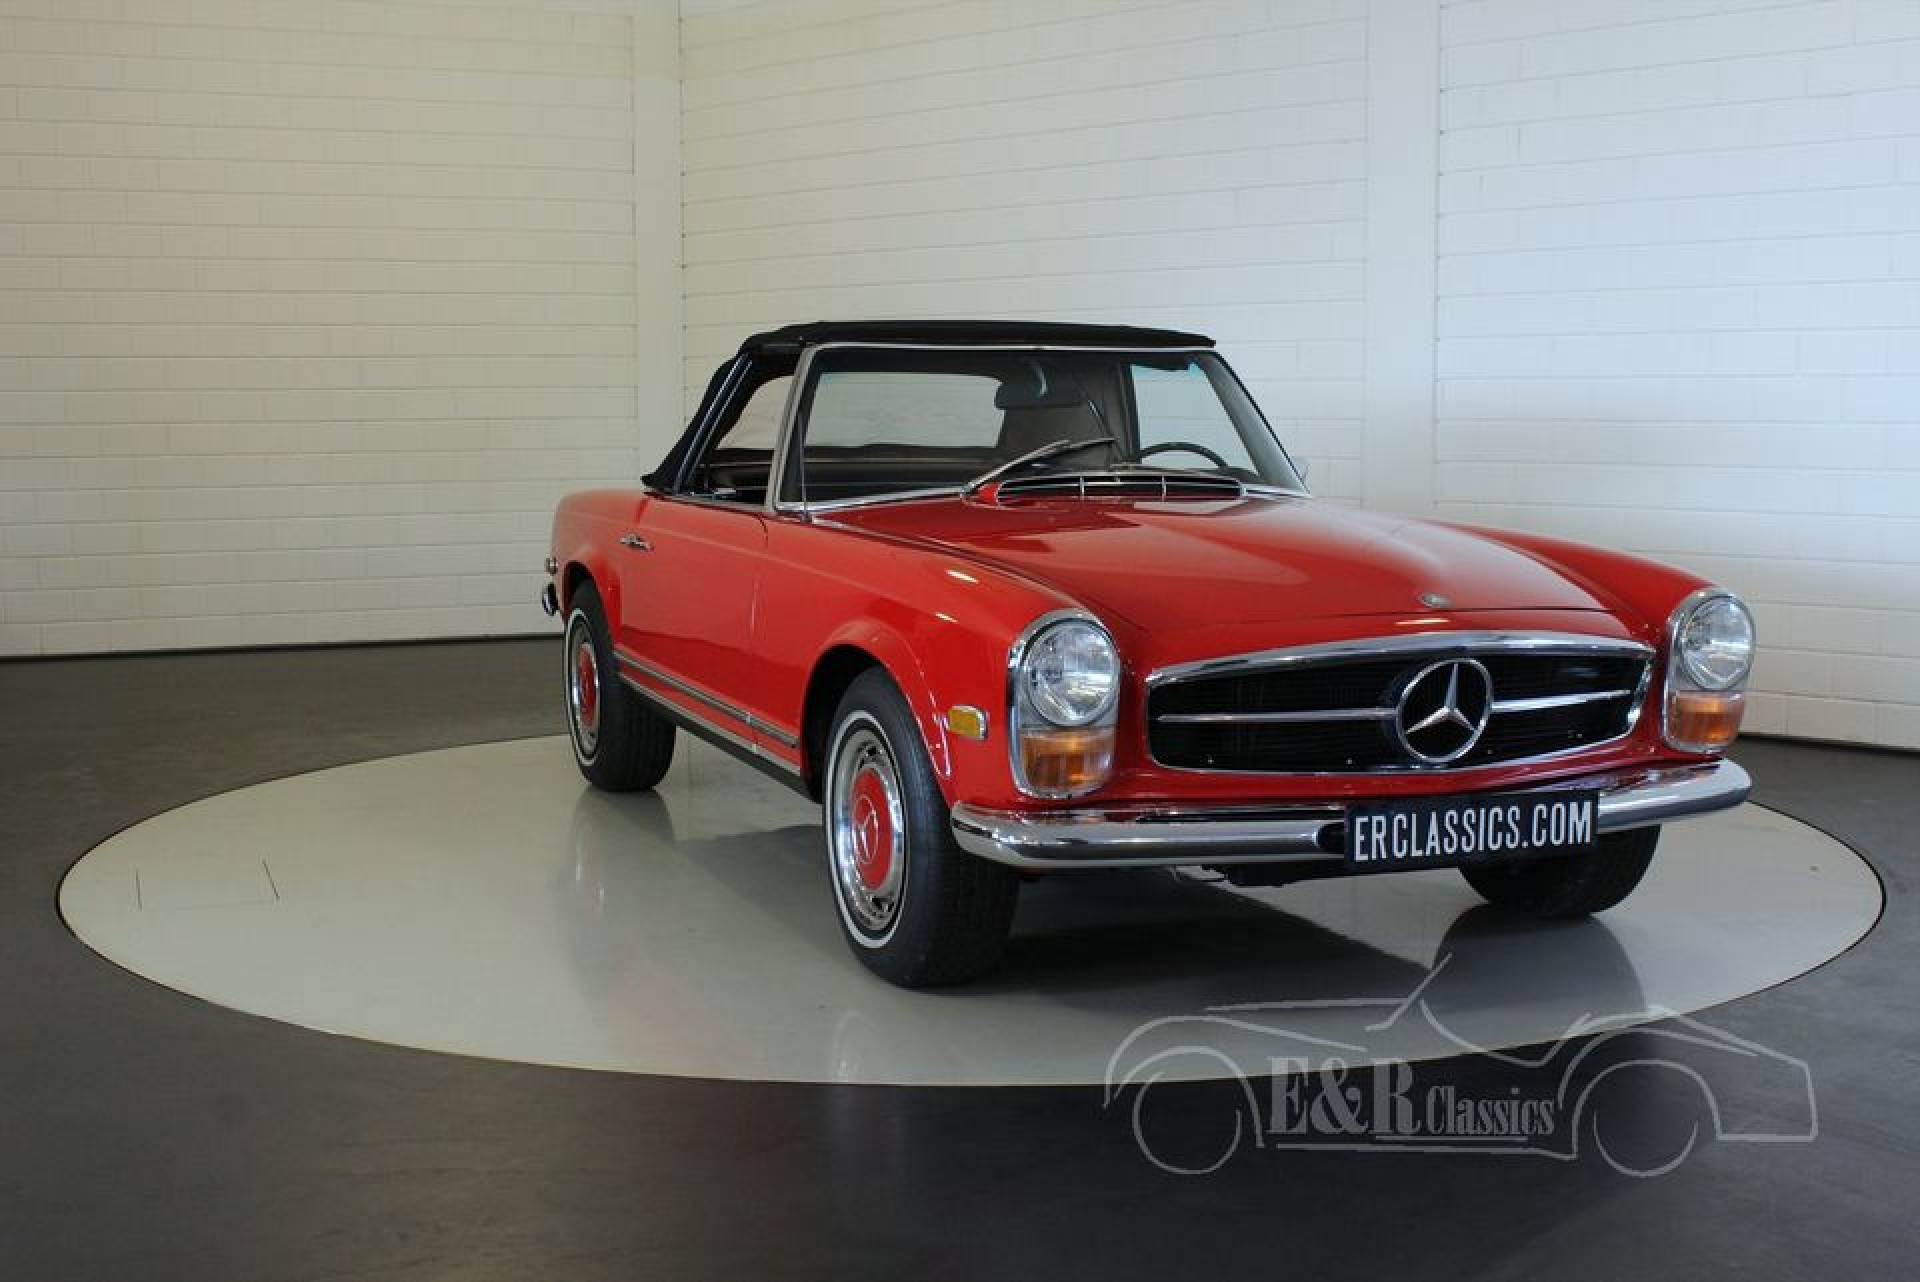 mercedes benz 280sl pagode 1968 vendre erclassics. Black Bedroom Furniture Sets. Home Design Ideas